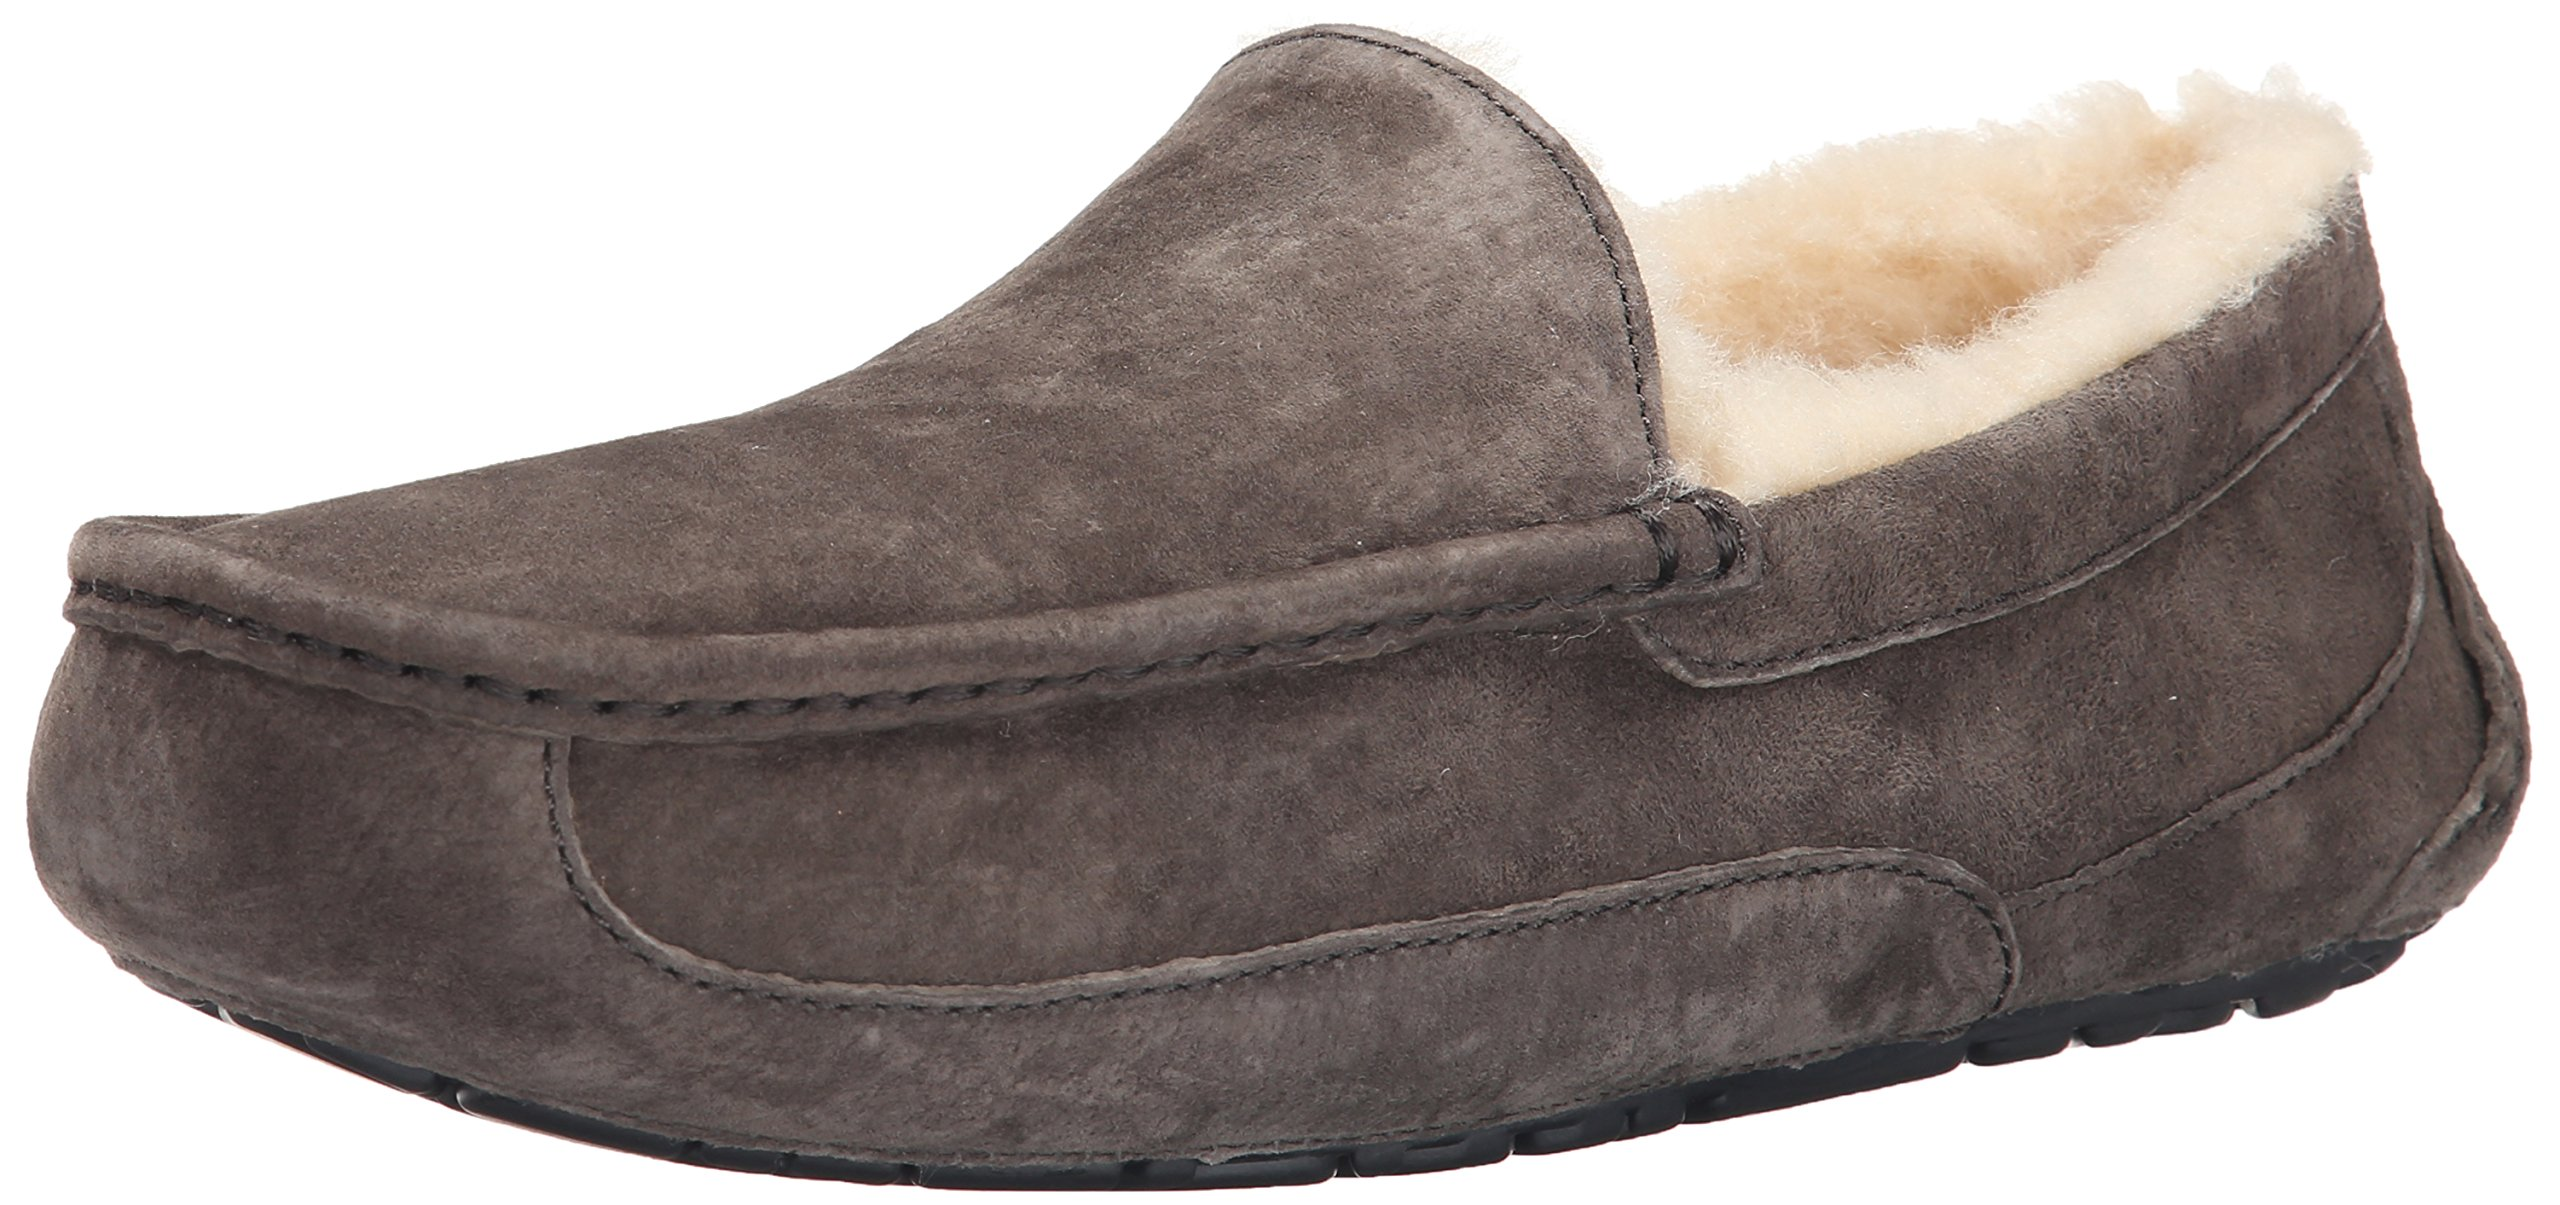 UGG Men's Ascot Slipper, Charcoal, 10 M US by UGG